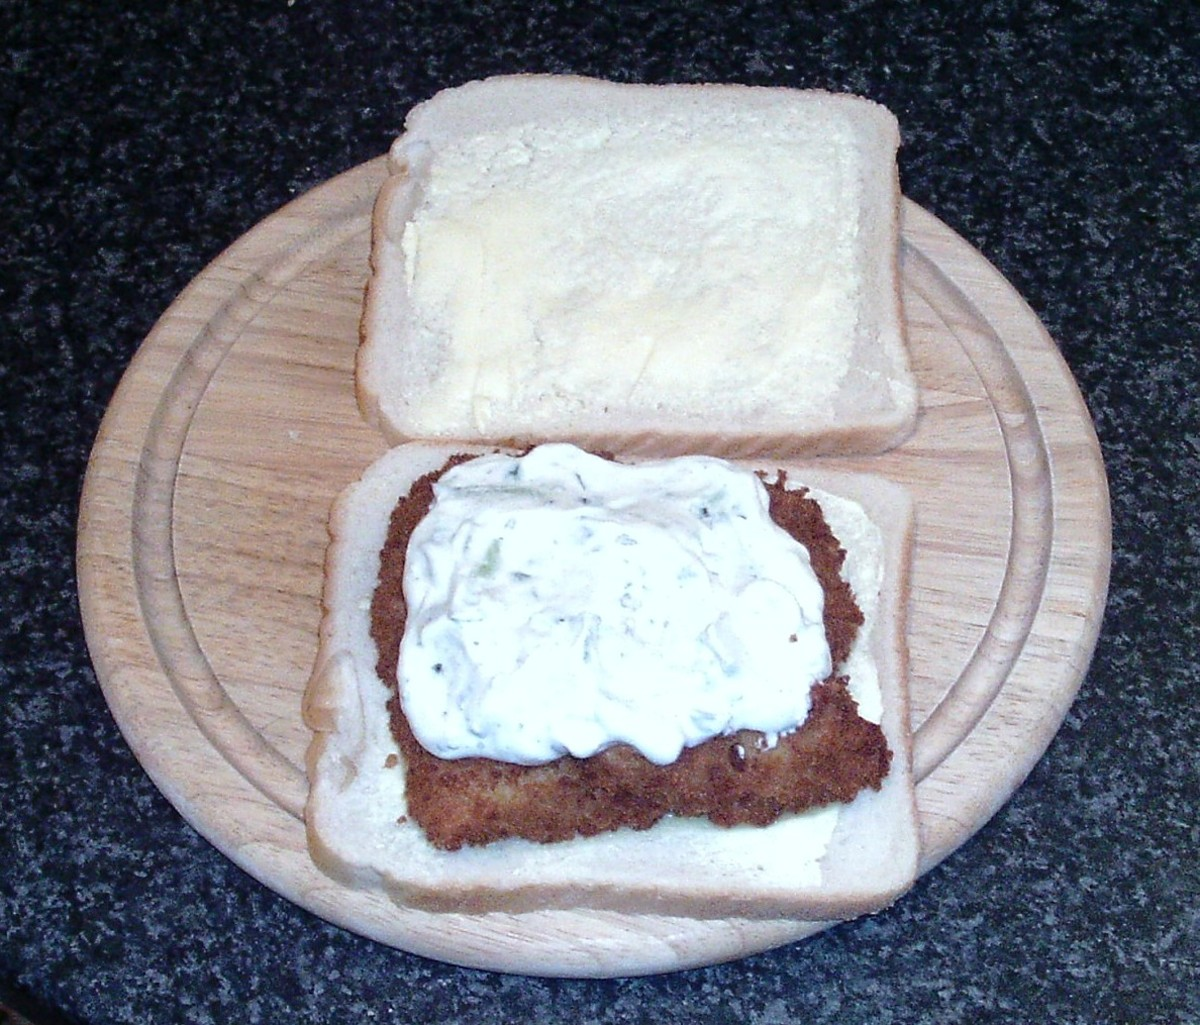 Tzatziki sauce on breaded cod